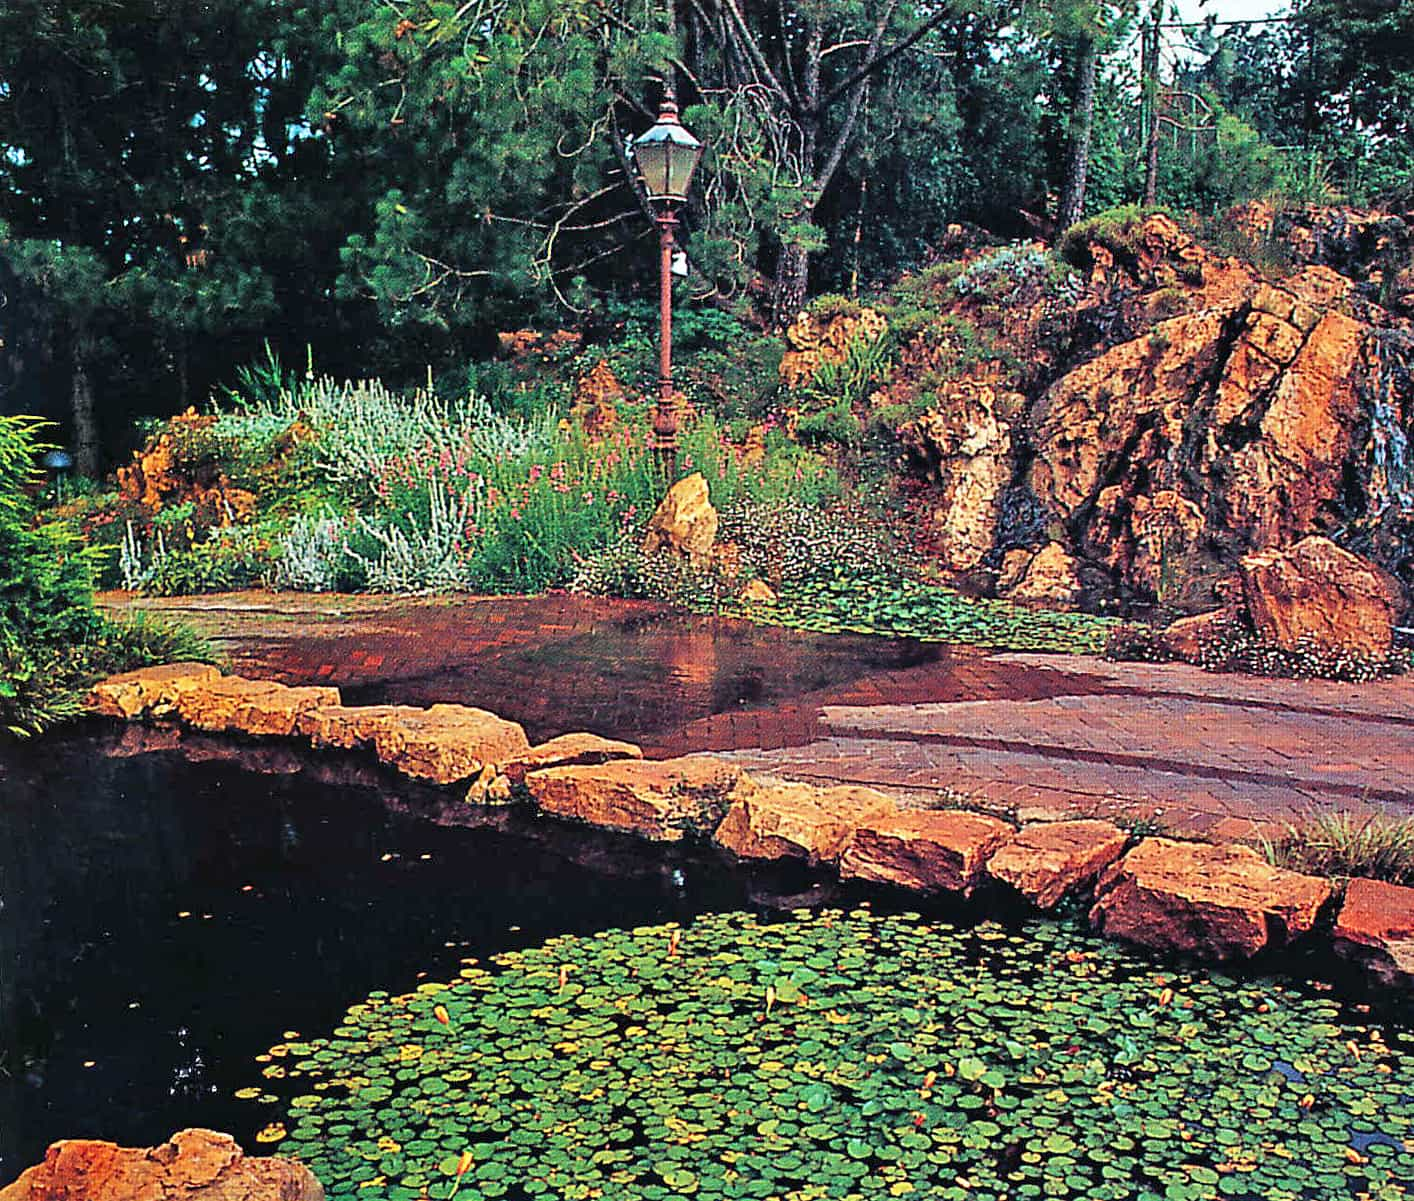 An unusual water feature across a driveway